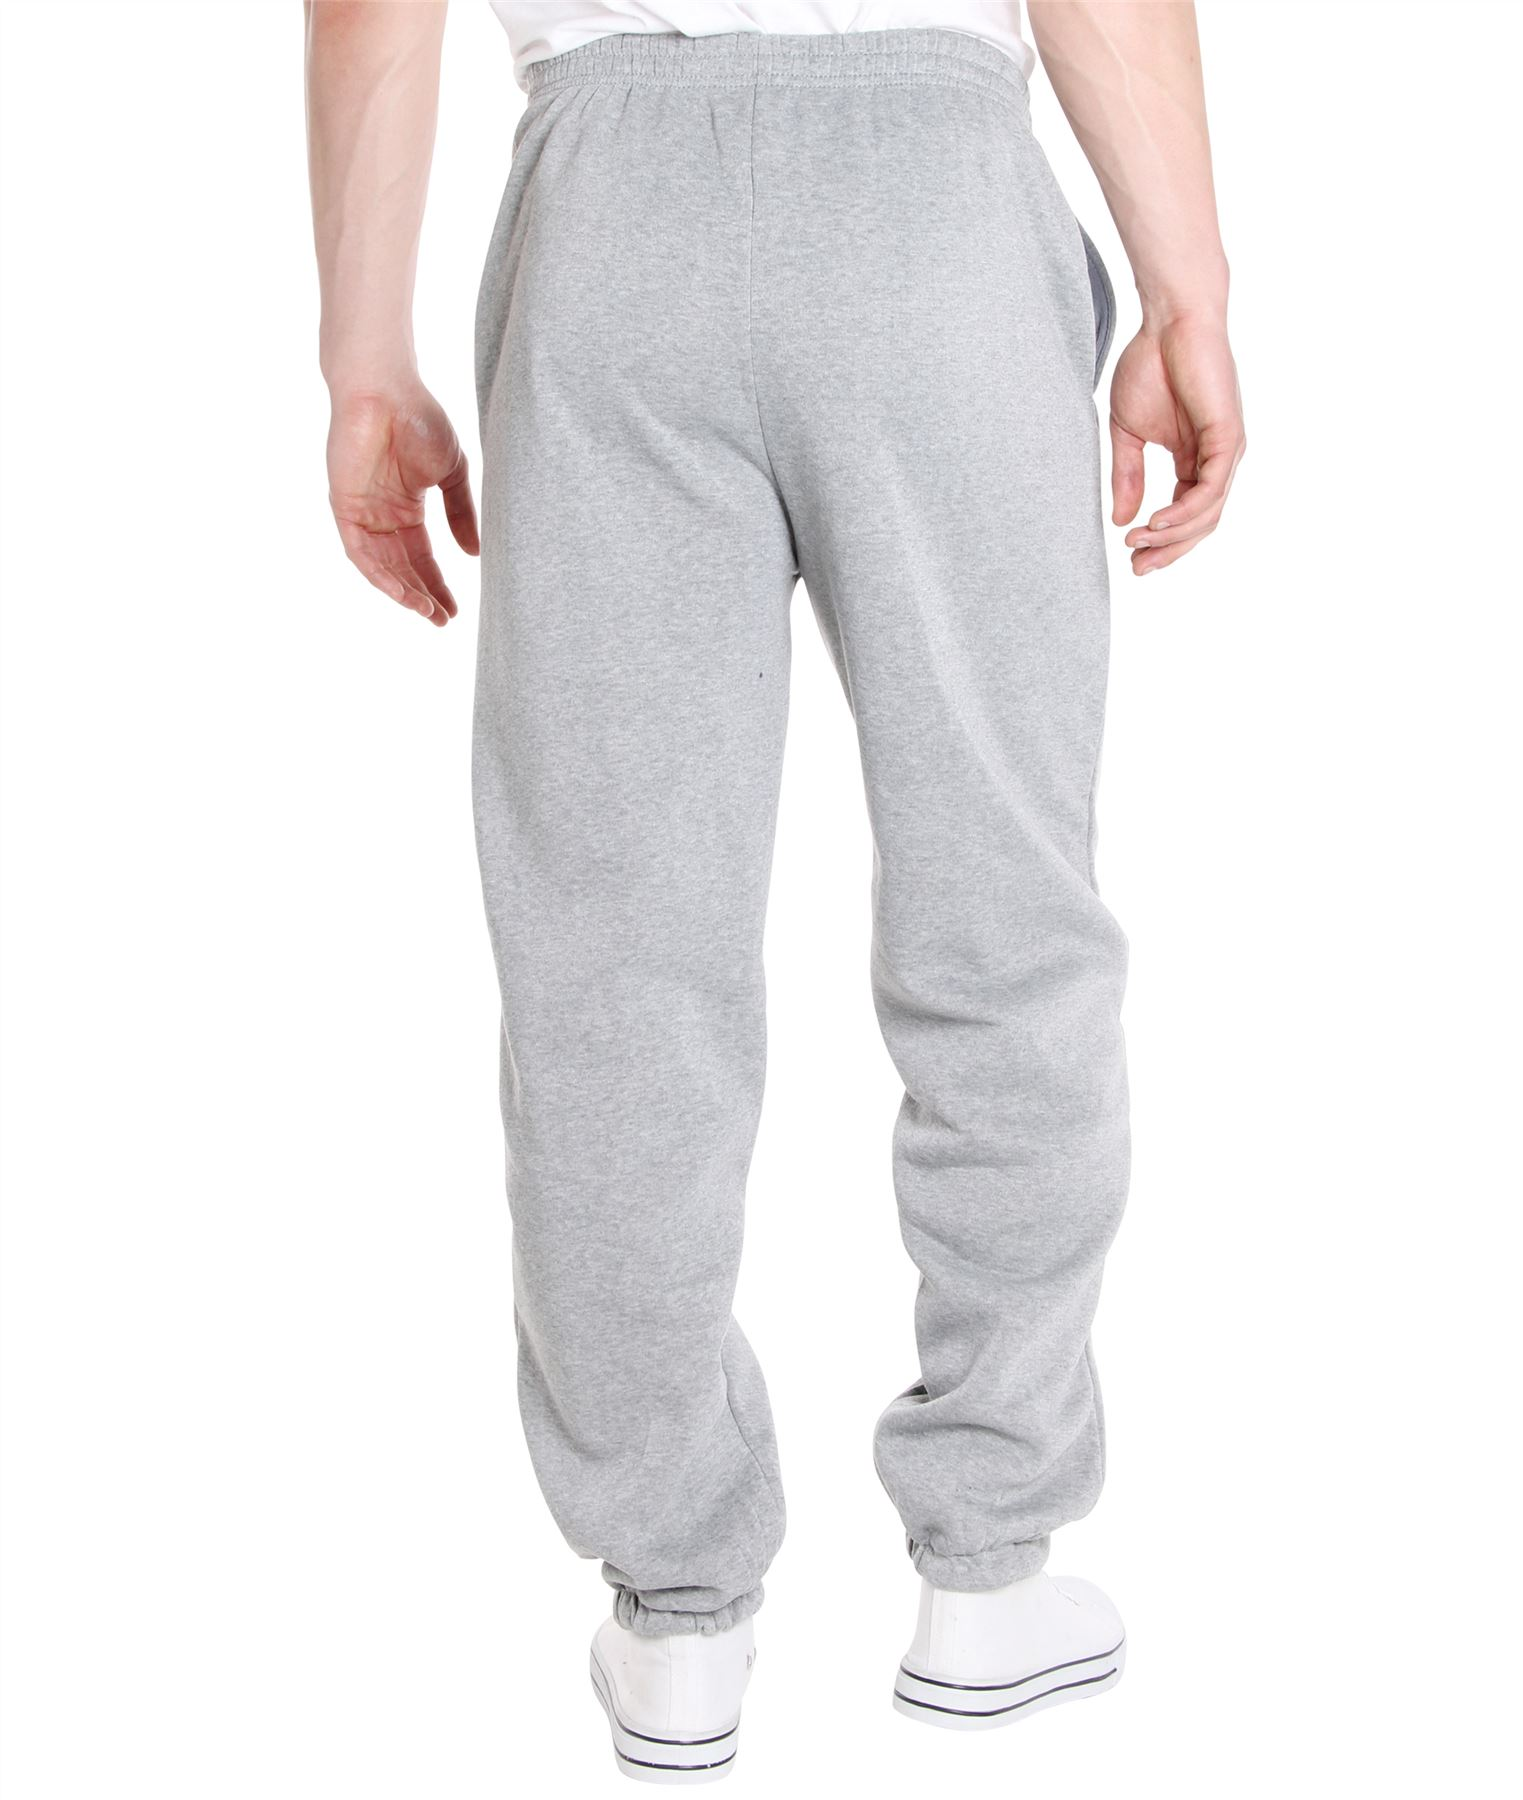 Mens-Tracksuit-Bottoms-Striped-Joggers-Jogging-Trousers-Fleece-Pants-Casual-Work thumbnail 21